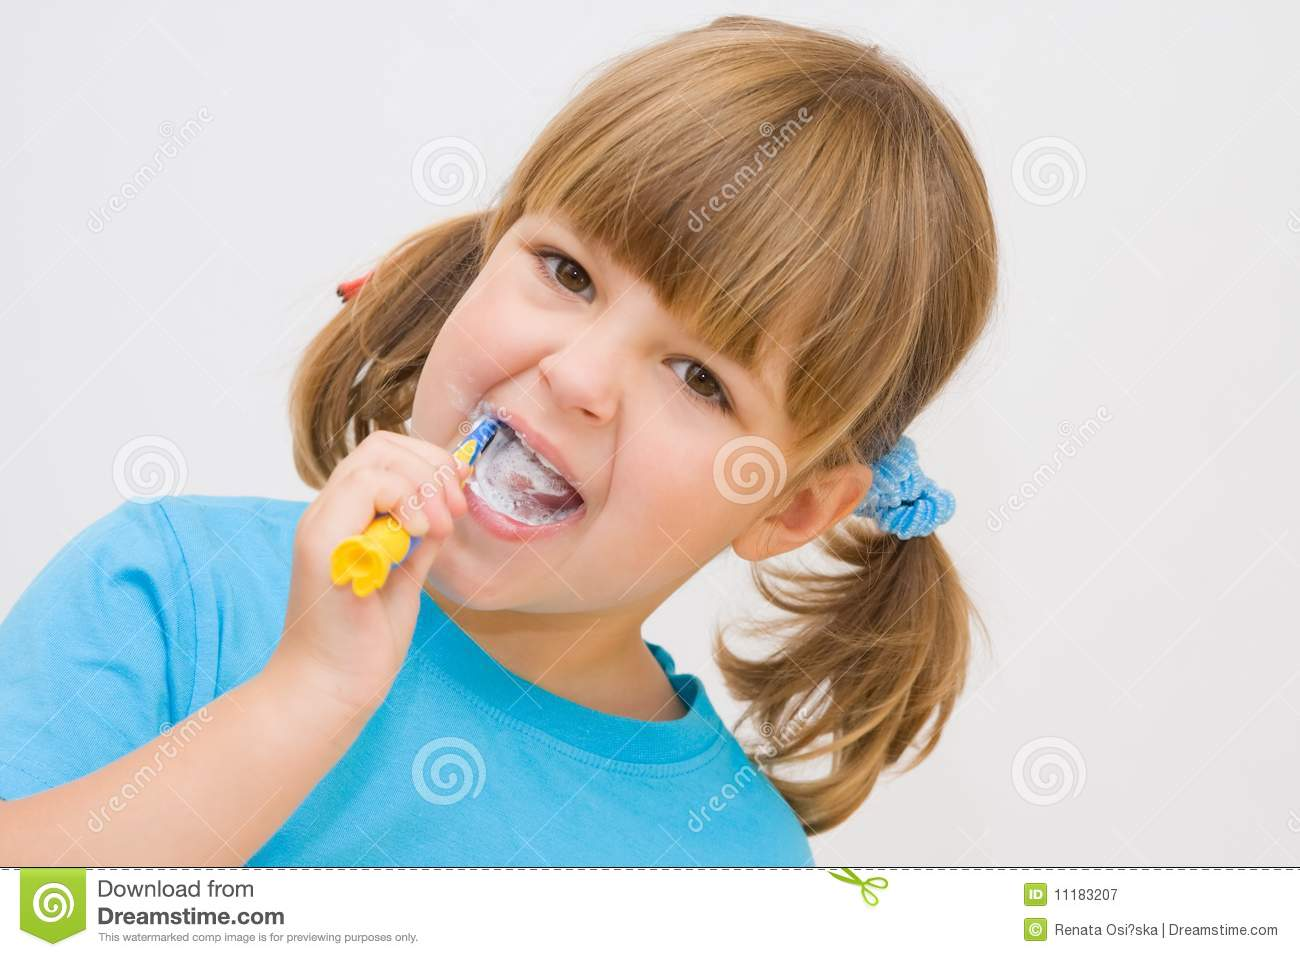 c086bd7860 Brushing my teeth stock image. Image of cleaning